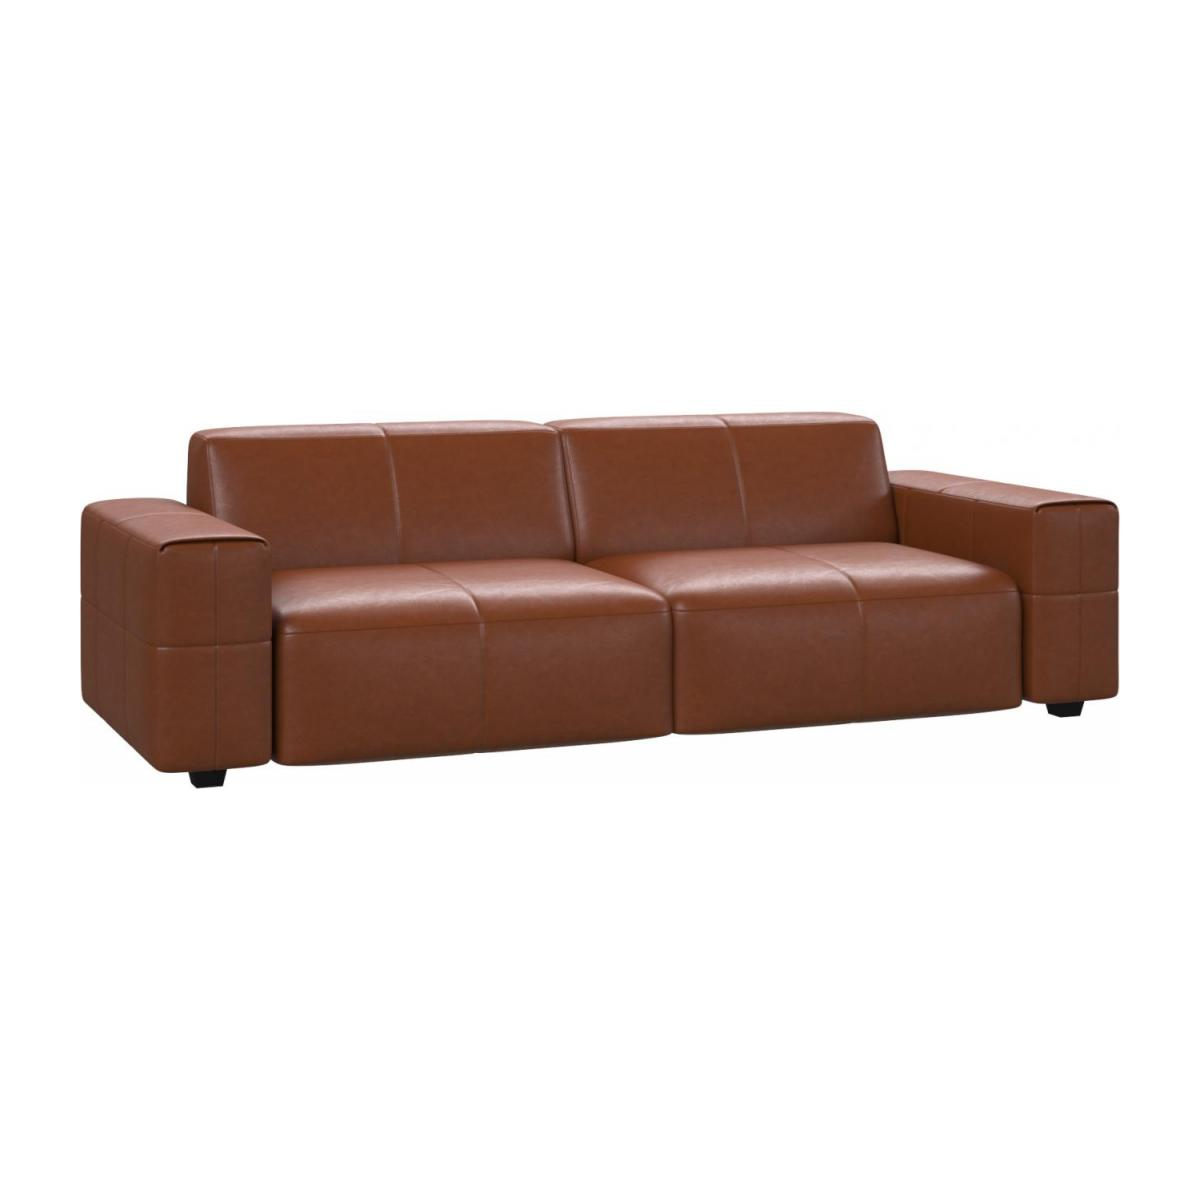 4 seater sofa in Vintage aniline leather, old chestnut n°1